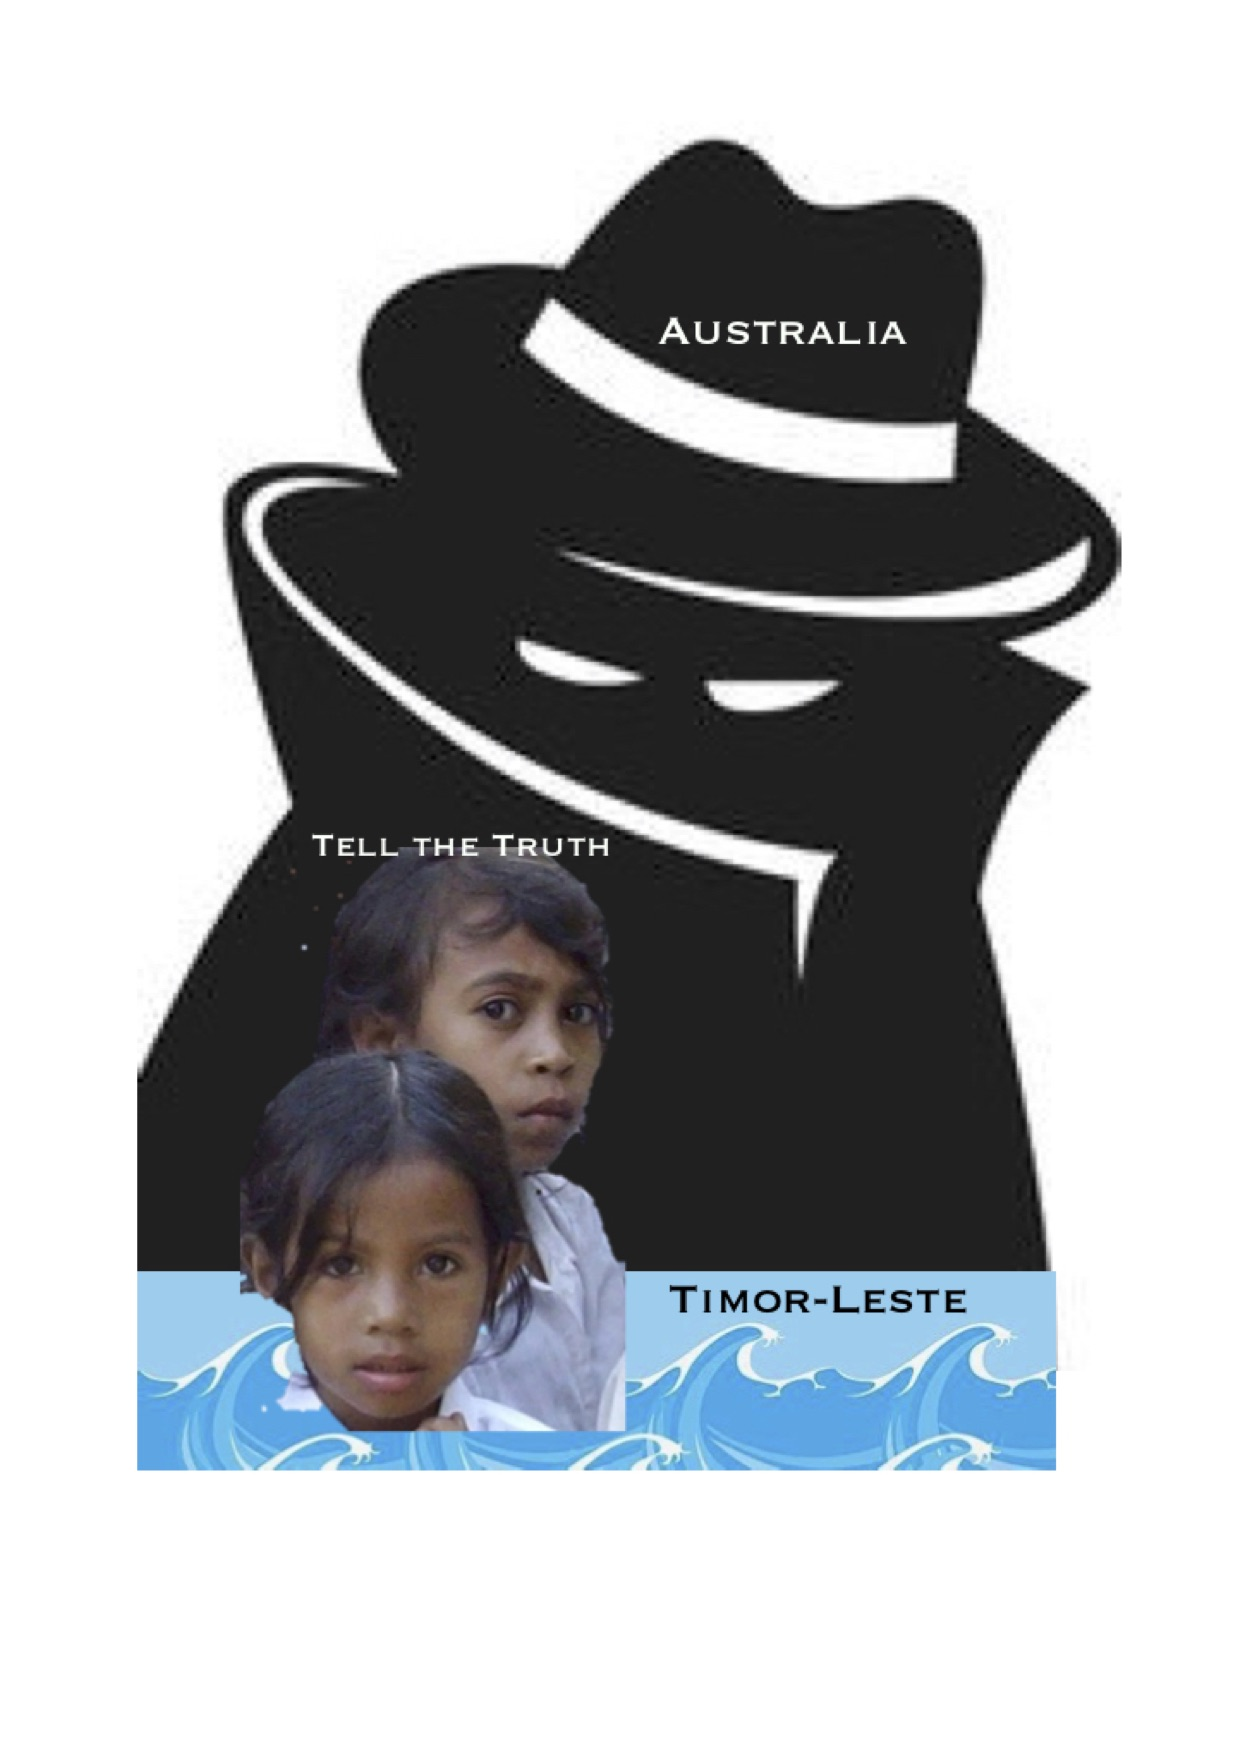 Australian Attorney-General: Drop the charges against truth-tellers re Australian spying on Timor